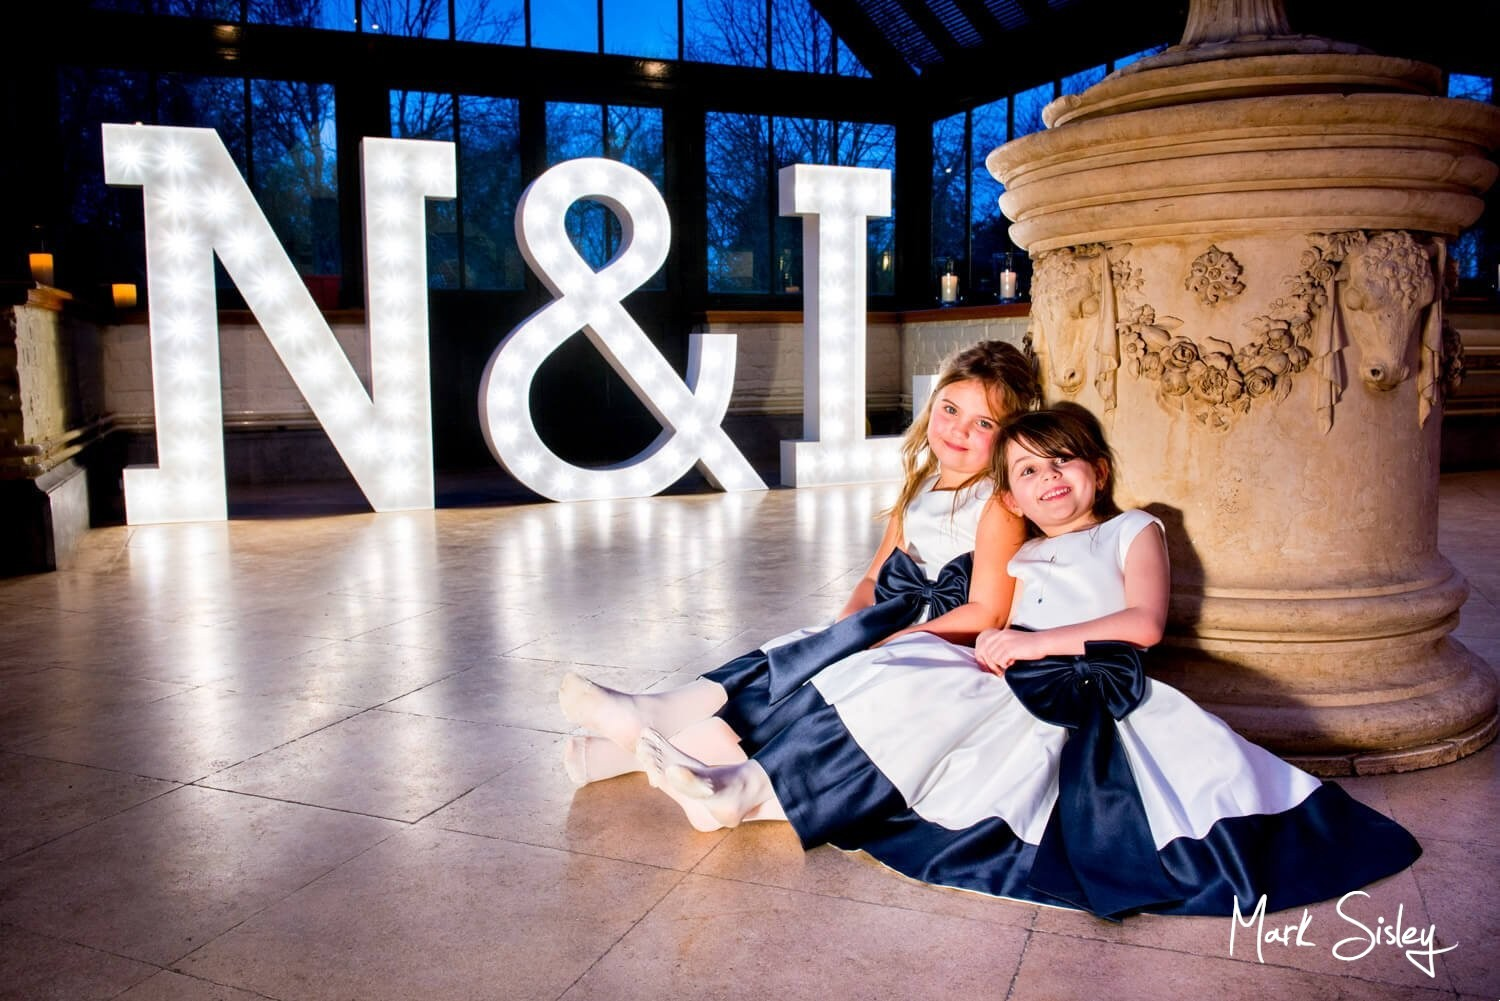 The Dairy Waddesdon Spring wedding shot of the flowergirls with giant illuminated letters